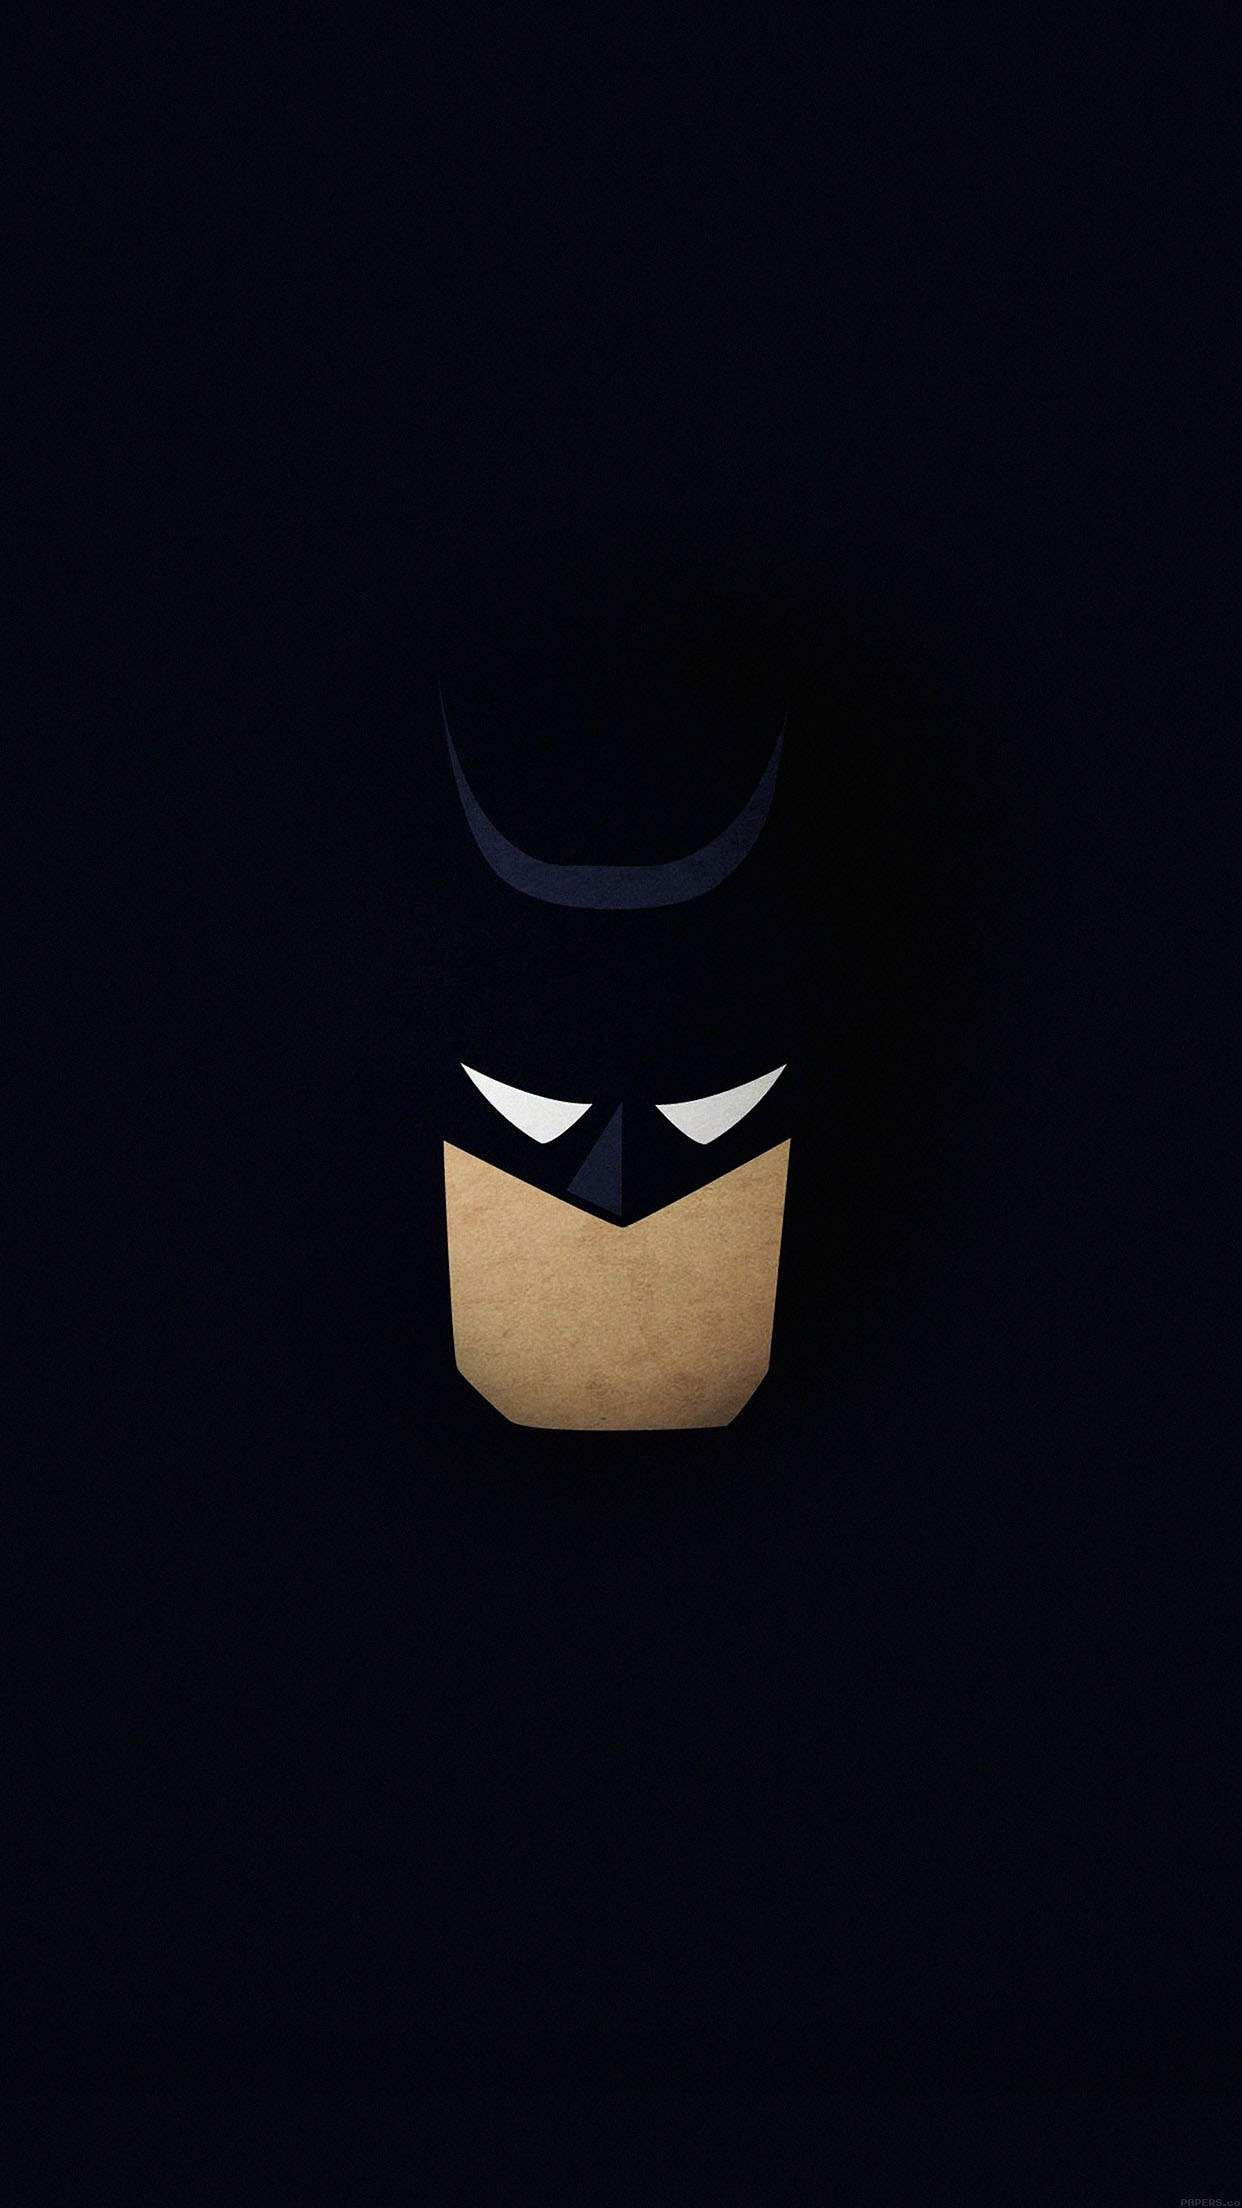 Download Mega Collection Of Cool Iphone Wallpapers Batman Wallpaper Batman Wallpaper Iphone Batman Pictures 3d wallpaper dark knight